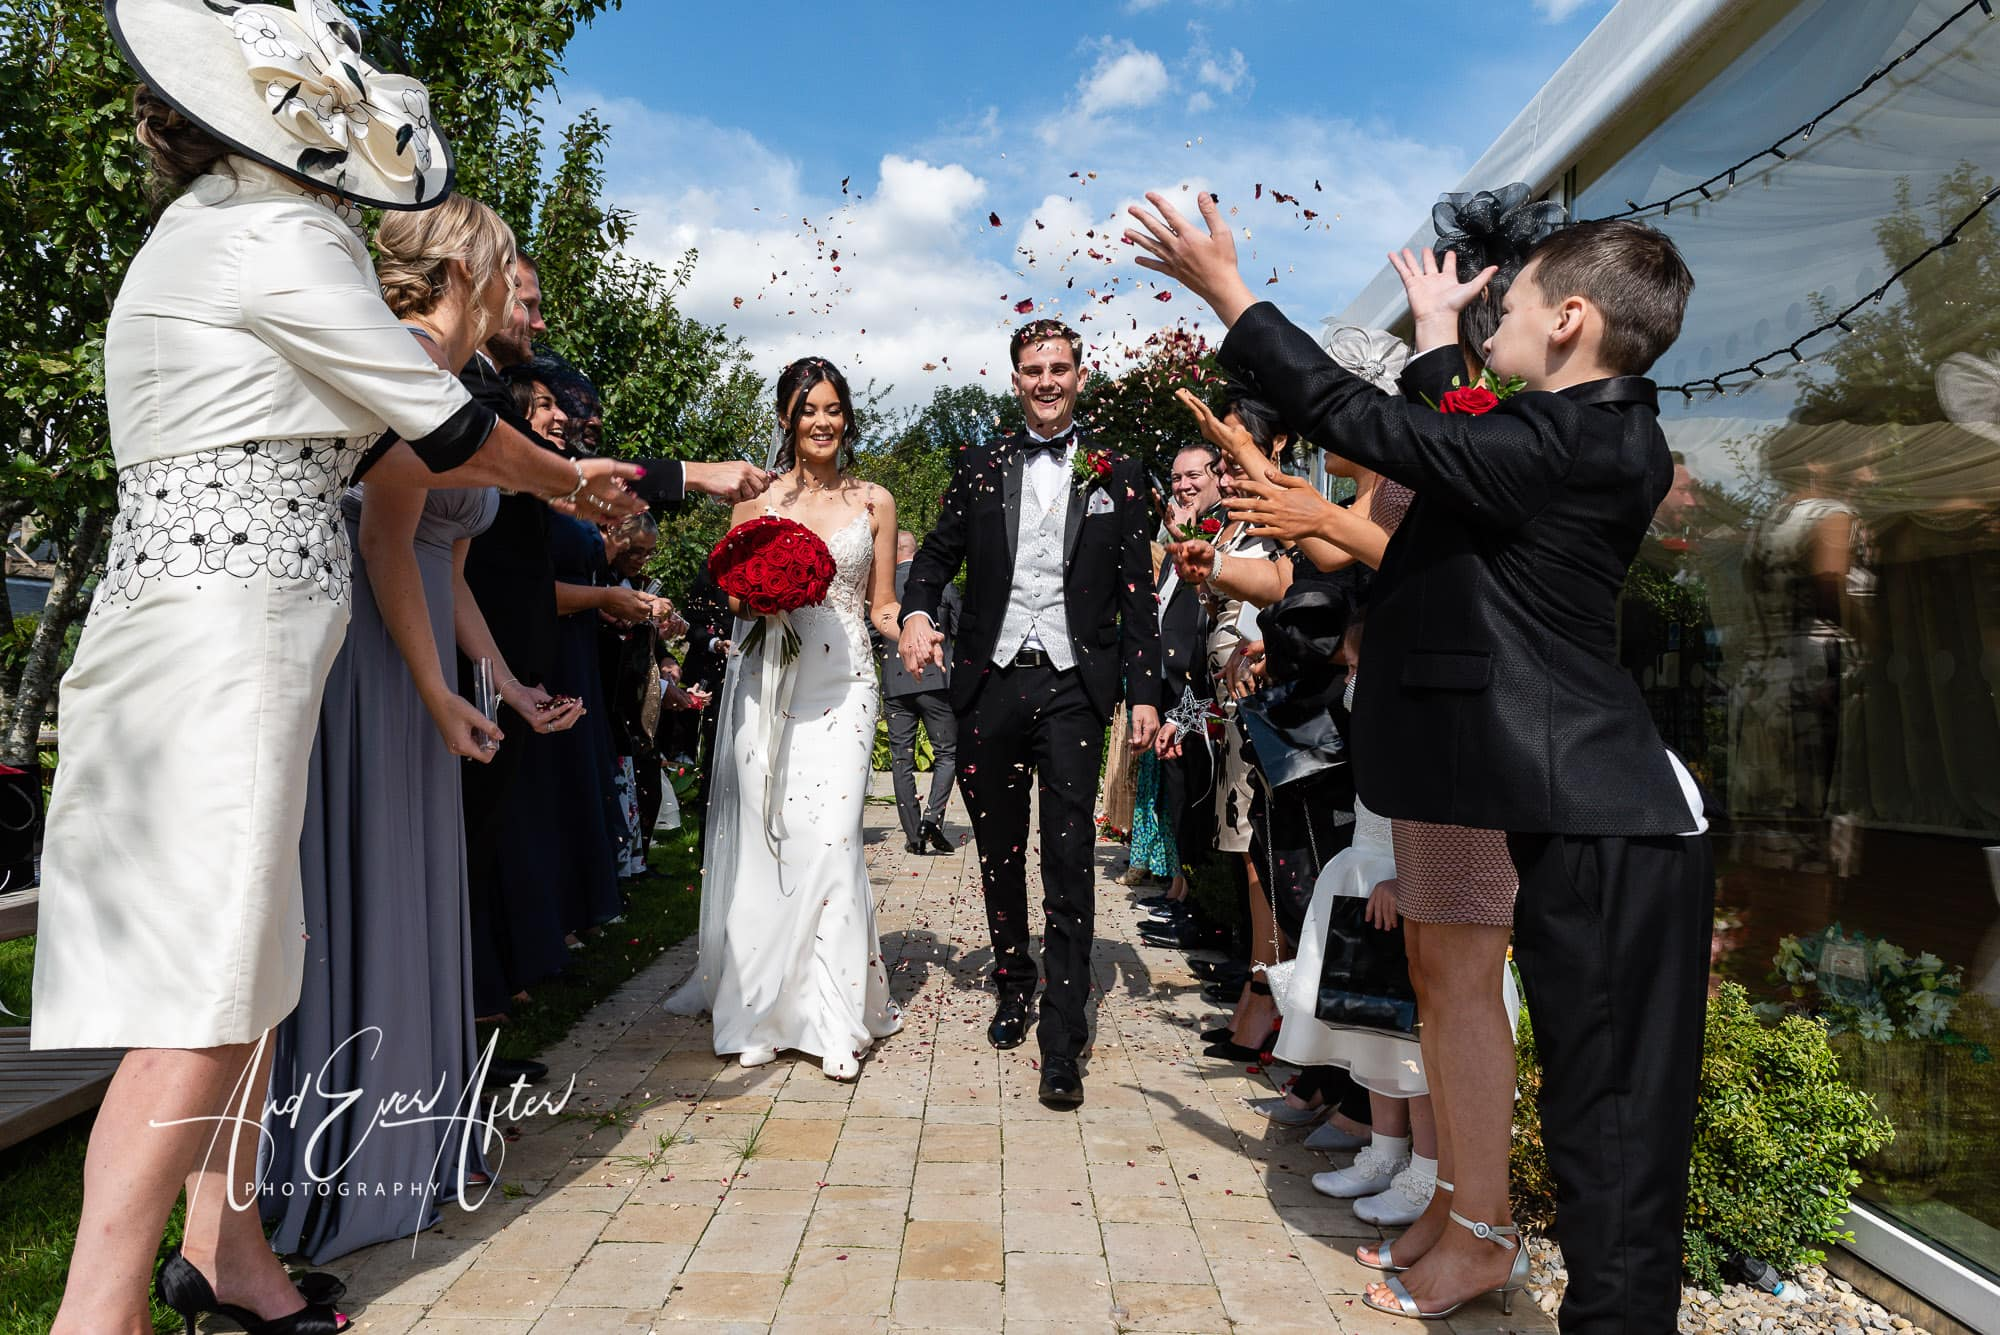 Wedding photography, the black horse at beamish wedding, bride and groom